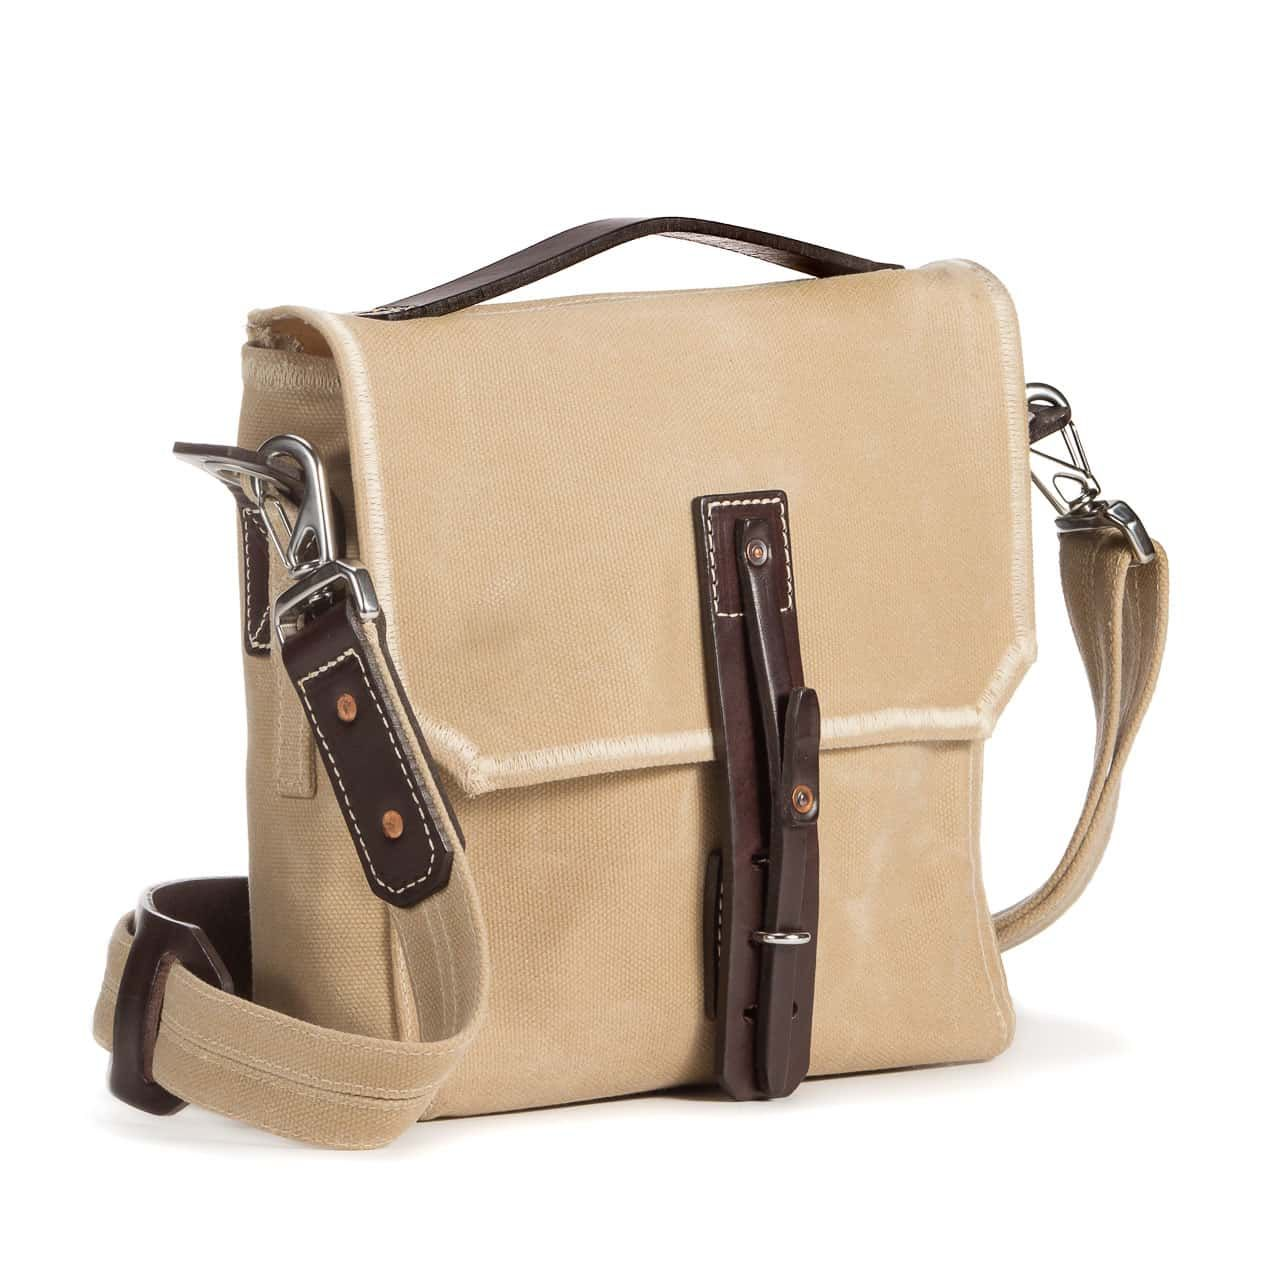 Indiana Gear Bag in Color Sand Front